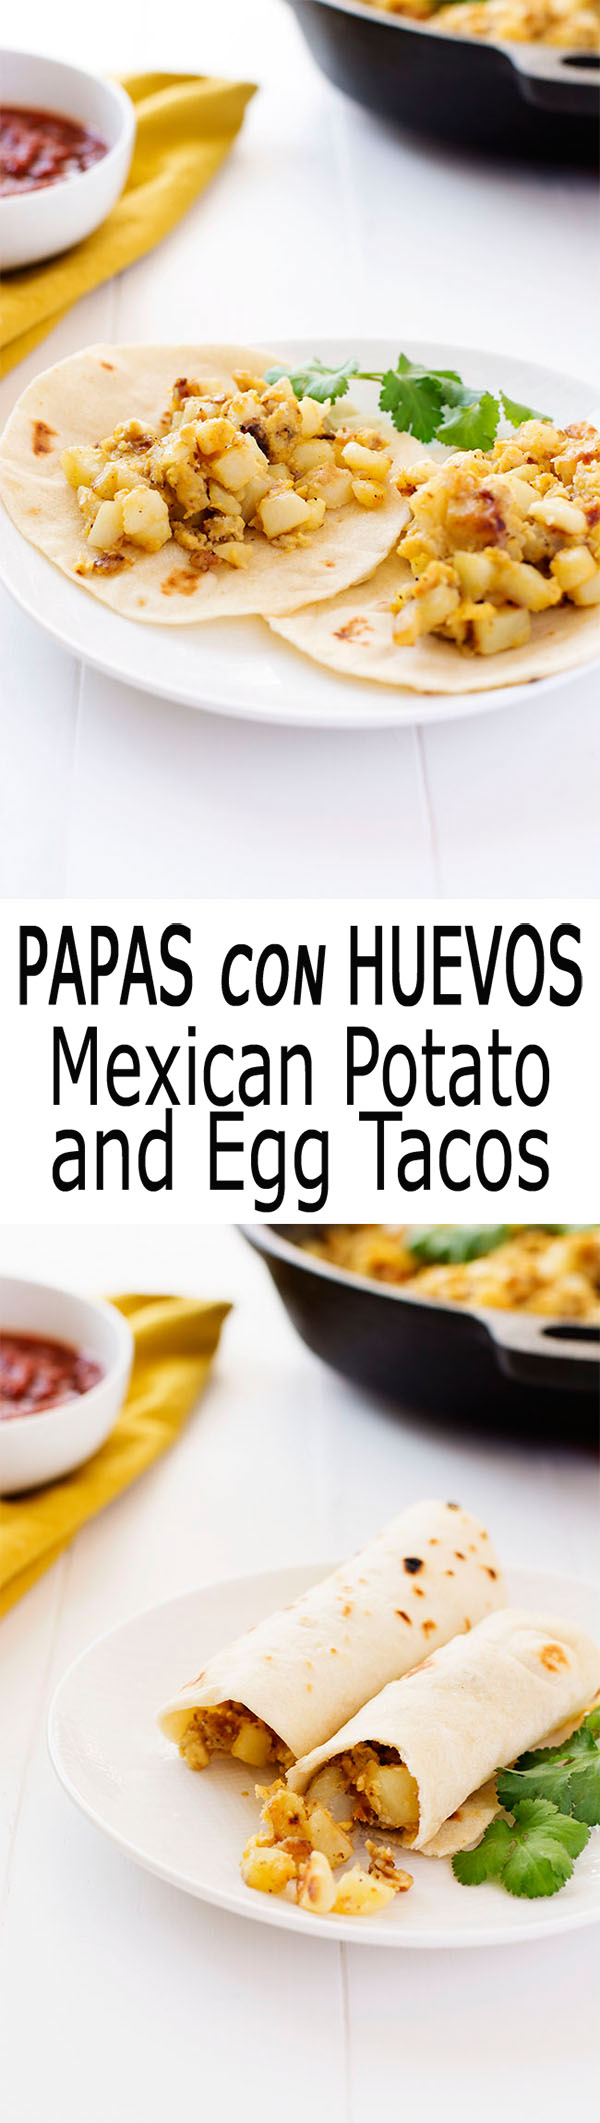 Papas Con Huevos Is Spanish For Potatoes With Eggs Abuela S Recipes For The Best Breakfas Potato And Egg Breakfast Breakfast Tacos Recipe Mexican Food Recipes